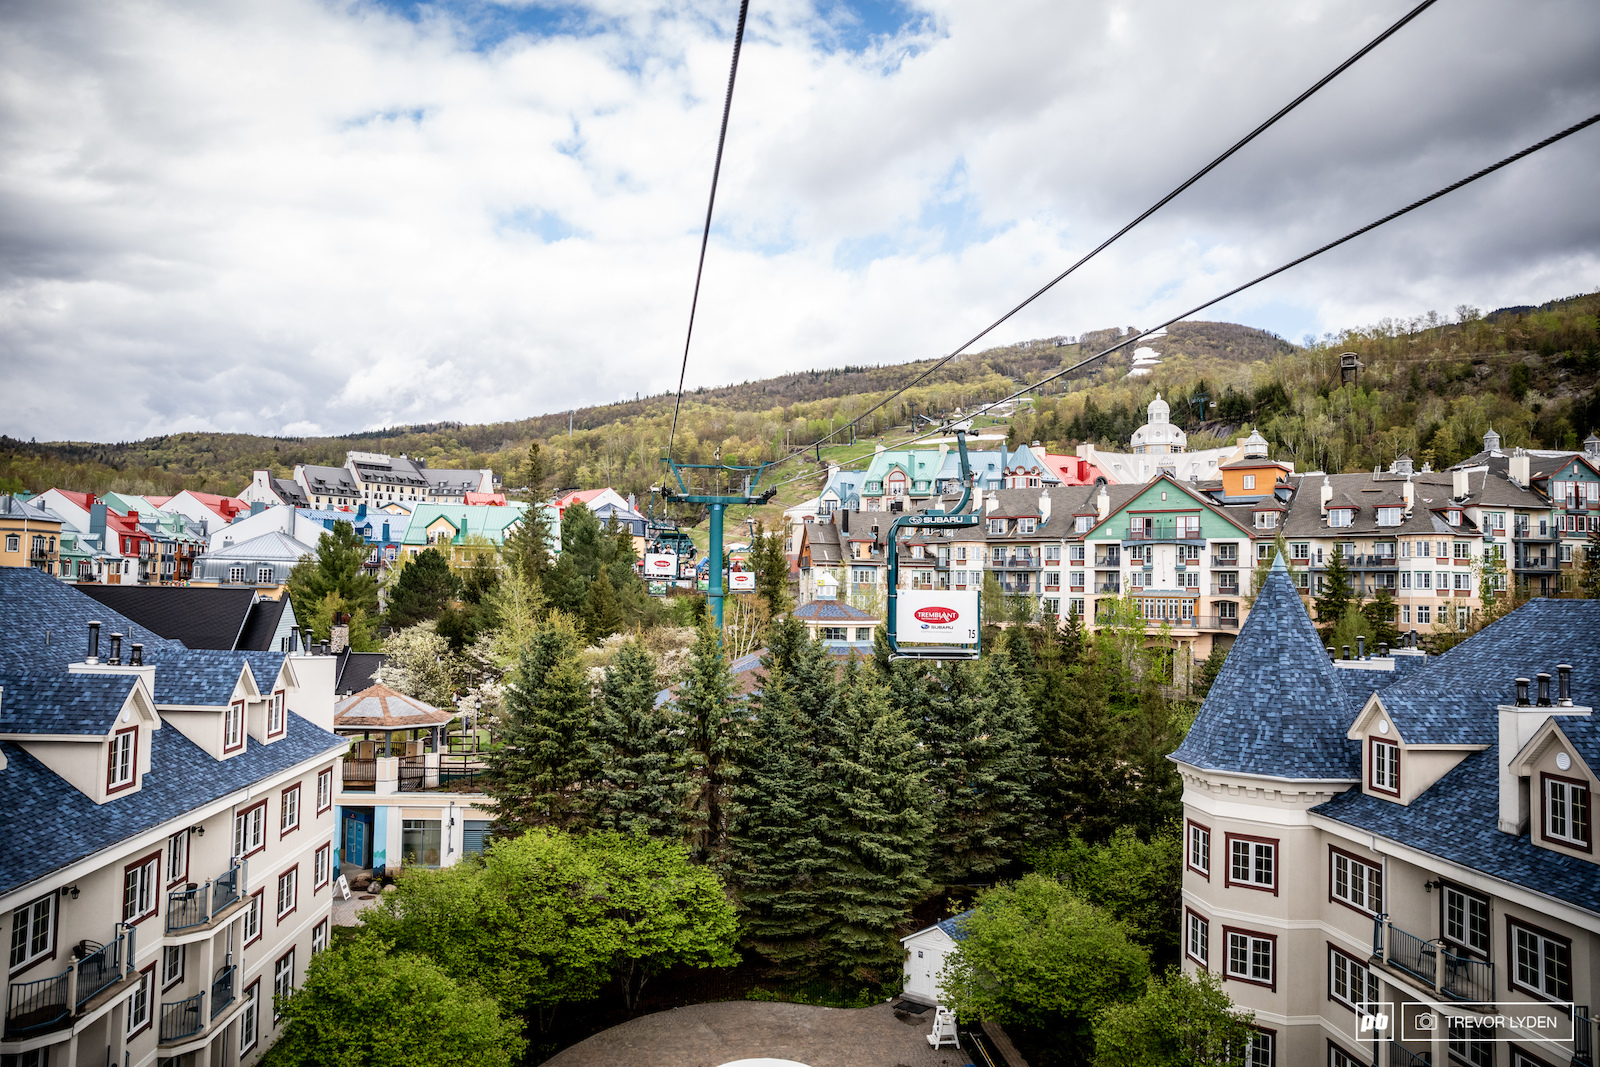 The free of charge Tremblant tram is a great way to get a birds eye view of the village.